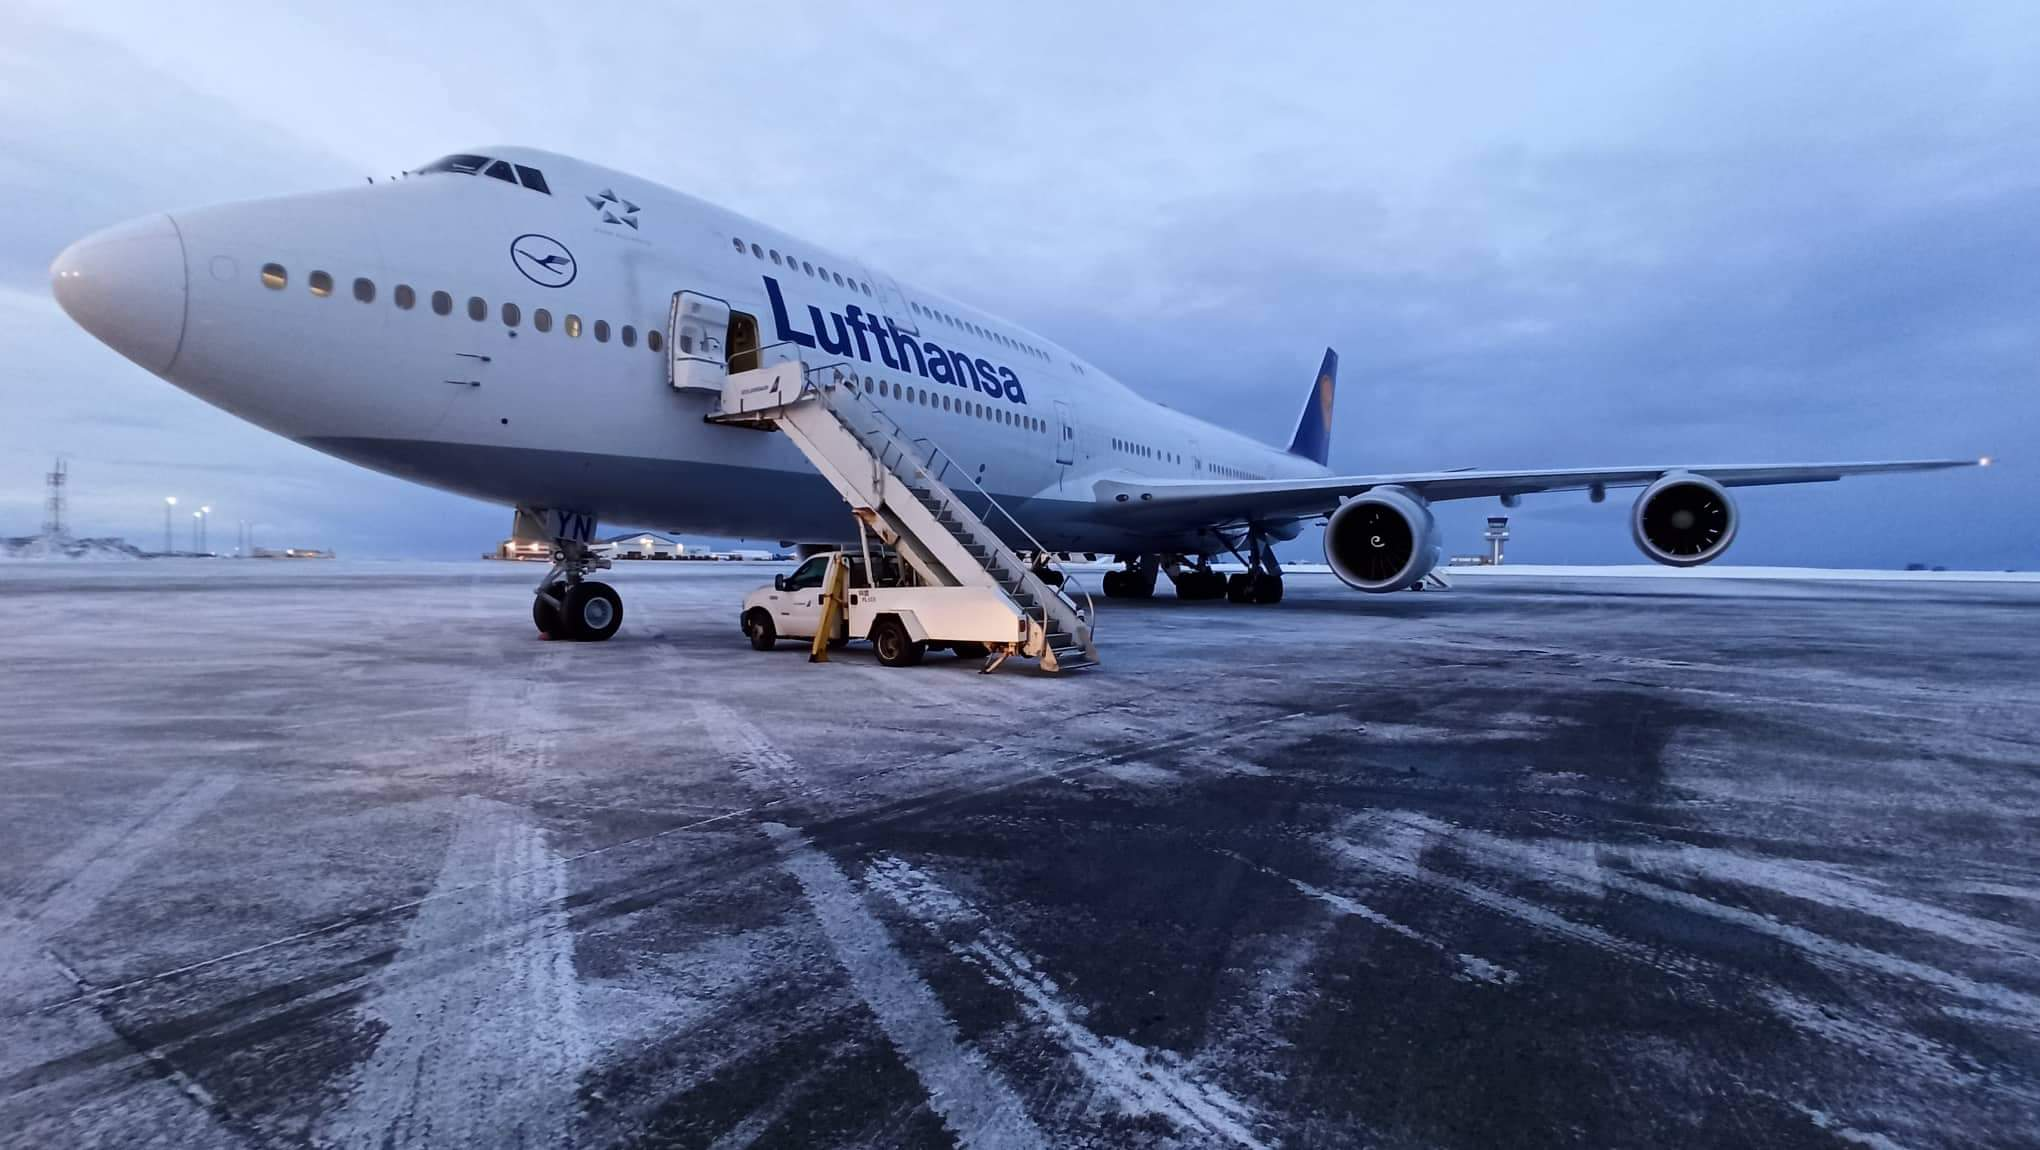 Boeing 747-8i reg. D-ABYN has diverted to Keflavik during Lufthansa flight DLH441 from Houston to Frankfurt // Source: Kuba Dudzinski